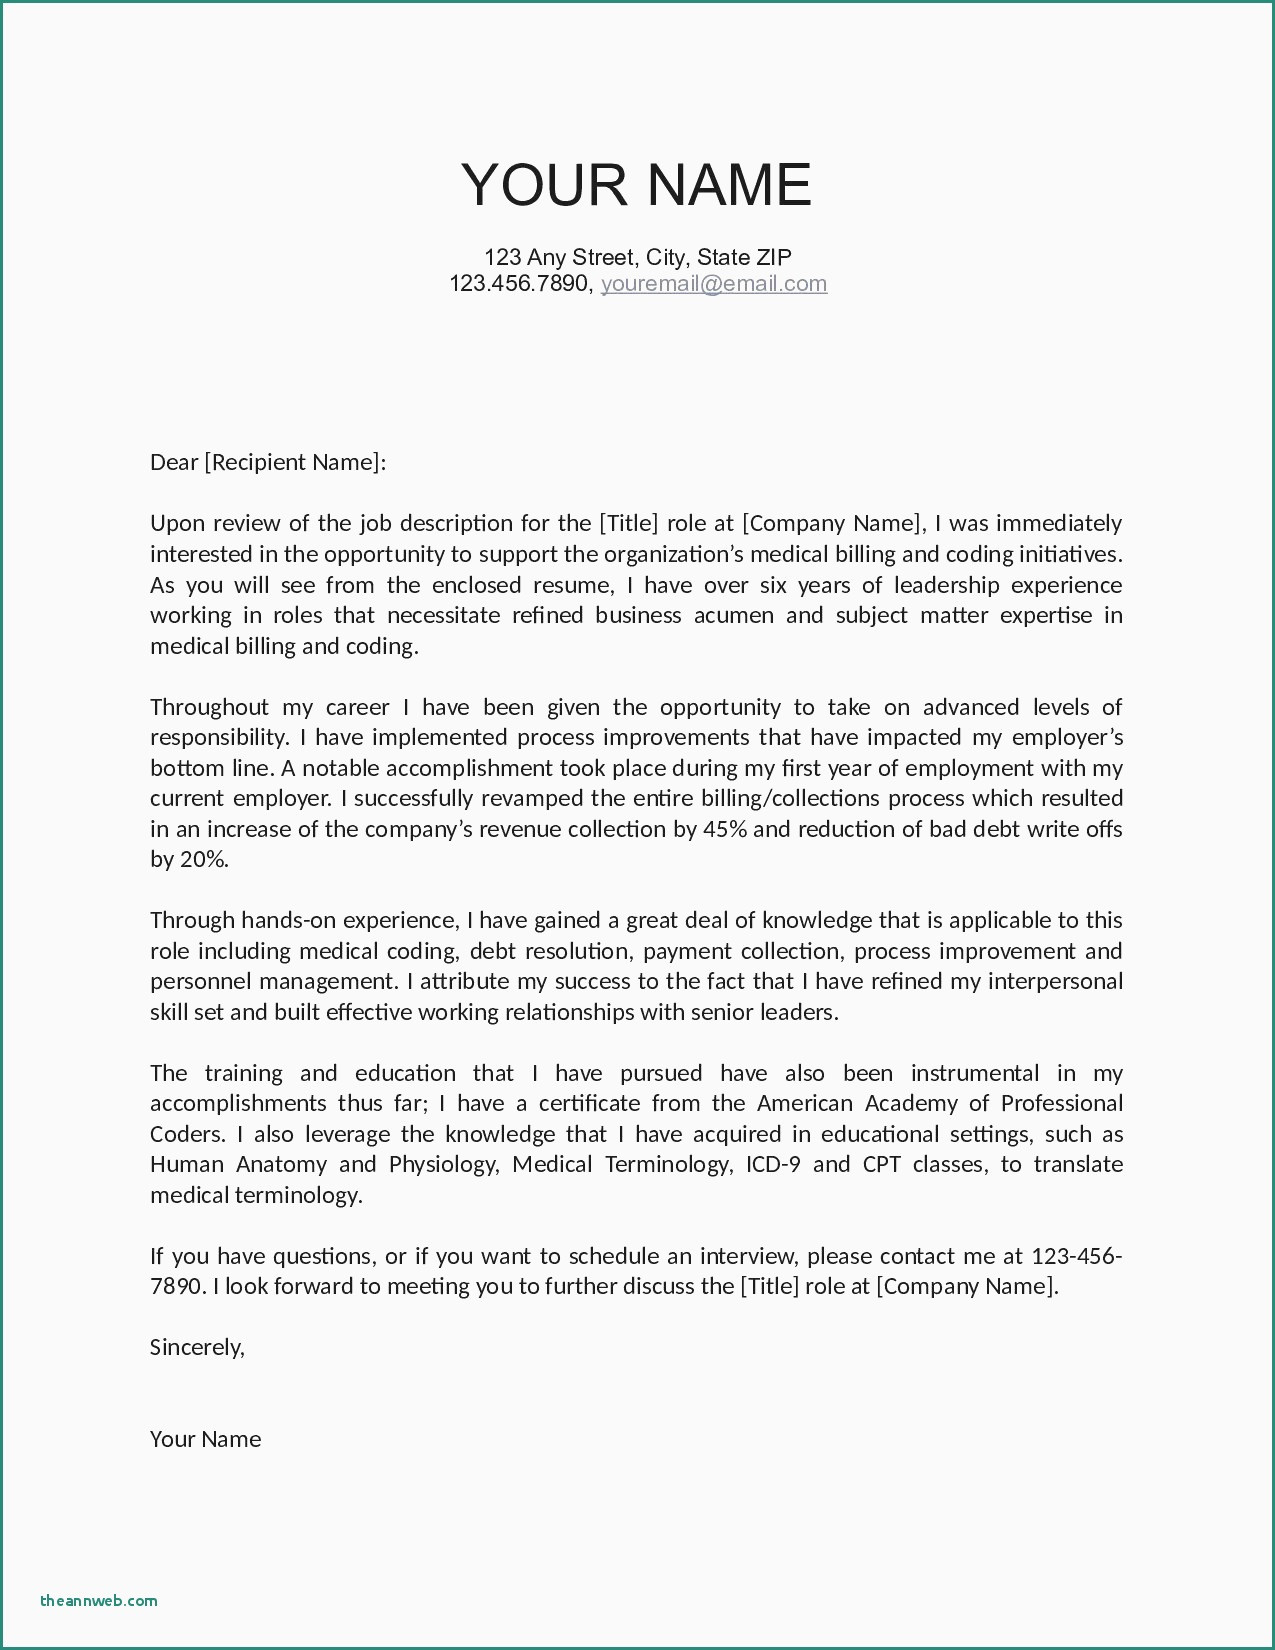 Cover Letter Review - Medical Cover Letter Inspirationa Cover Letter Review Resume Review